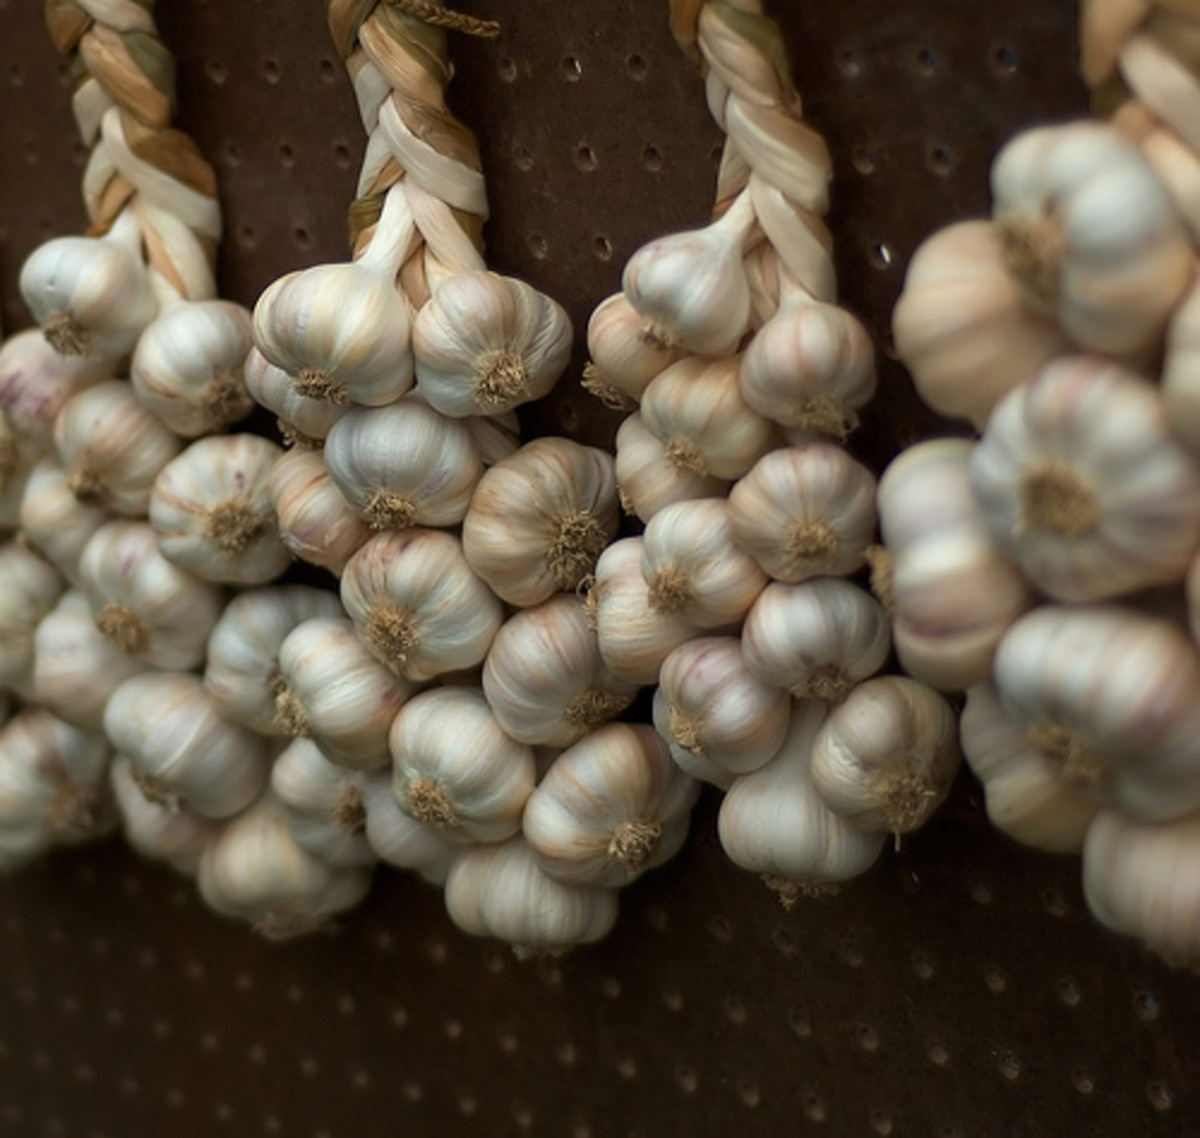 Braided garlic (Creative Commons - CC BY 3.0 - via Flickr).